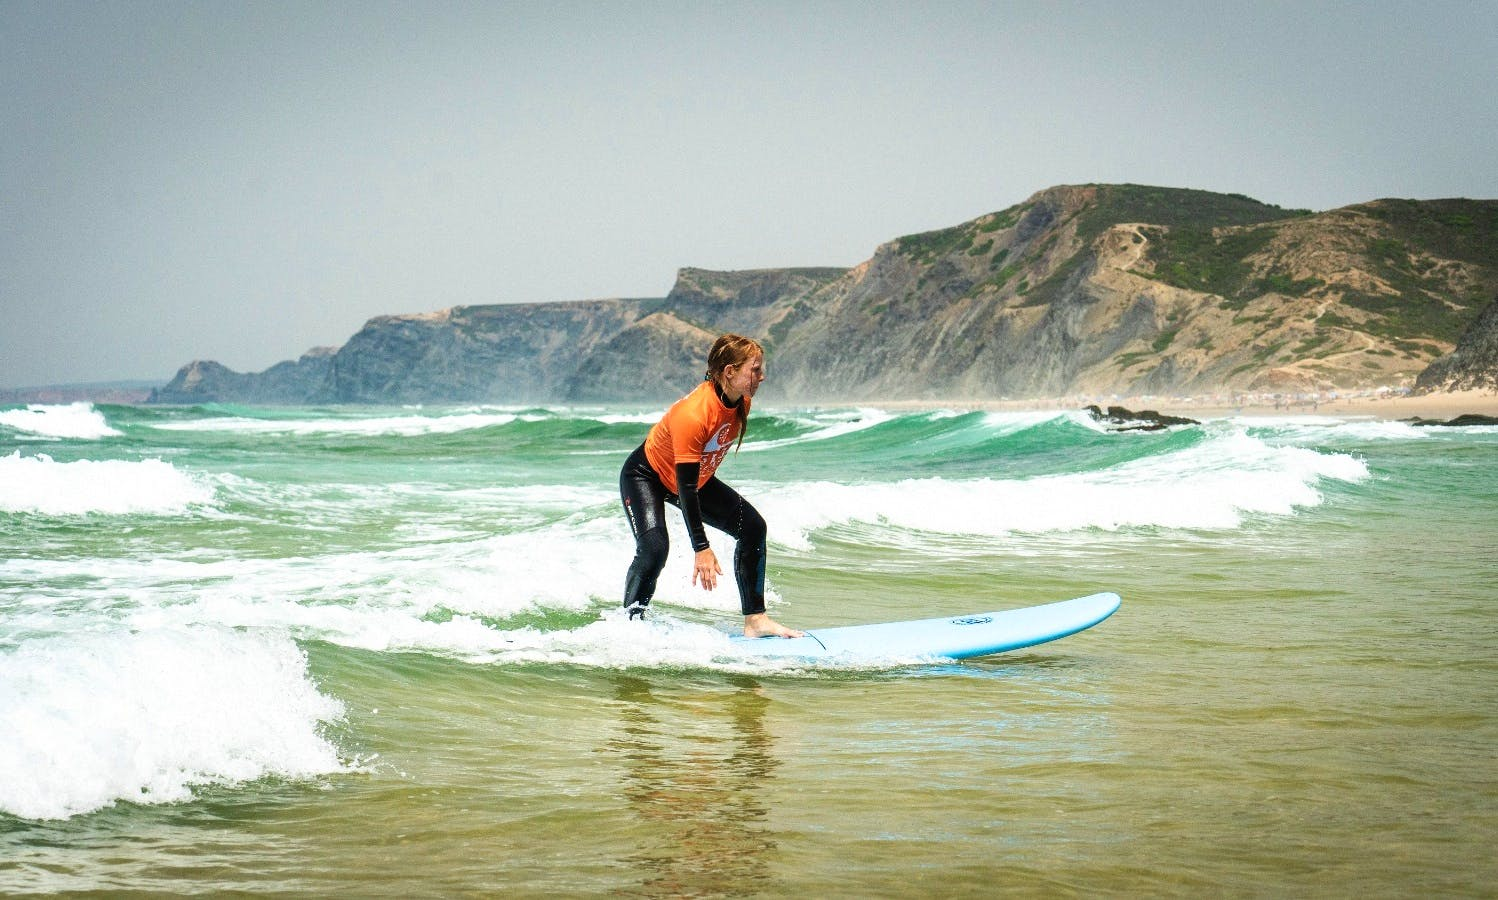 Surf Lessons for all levels in Algarve, Portugal